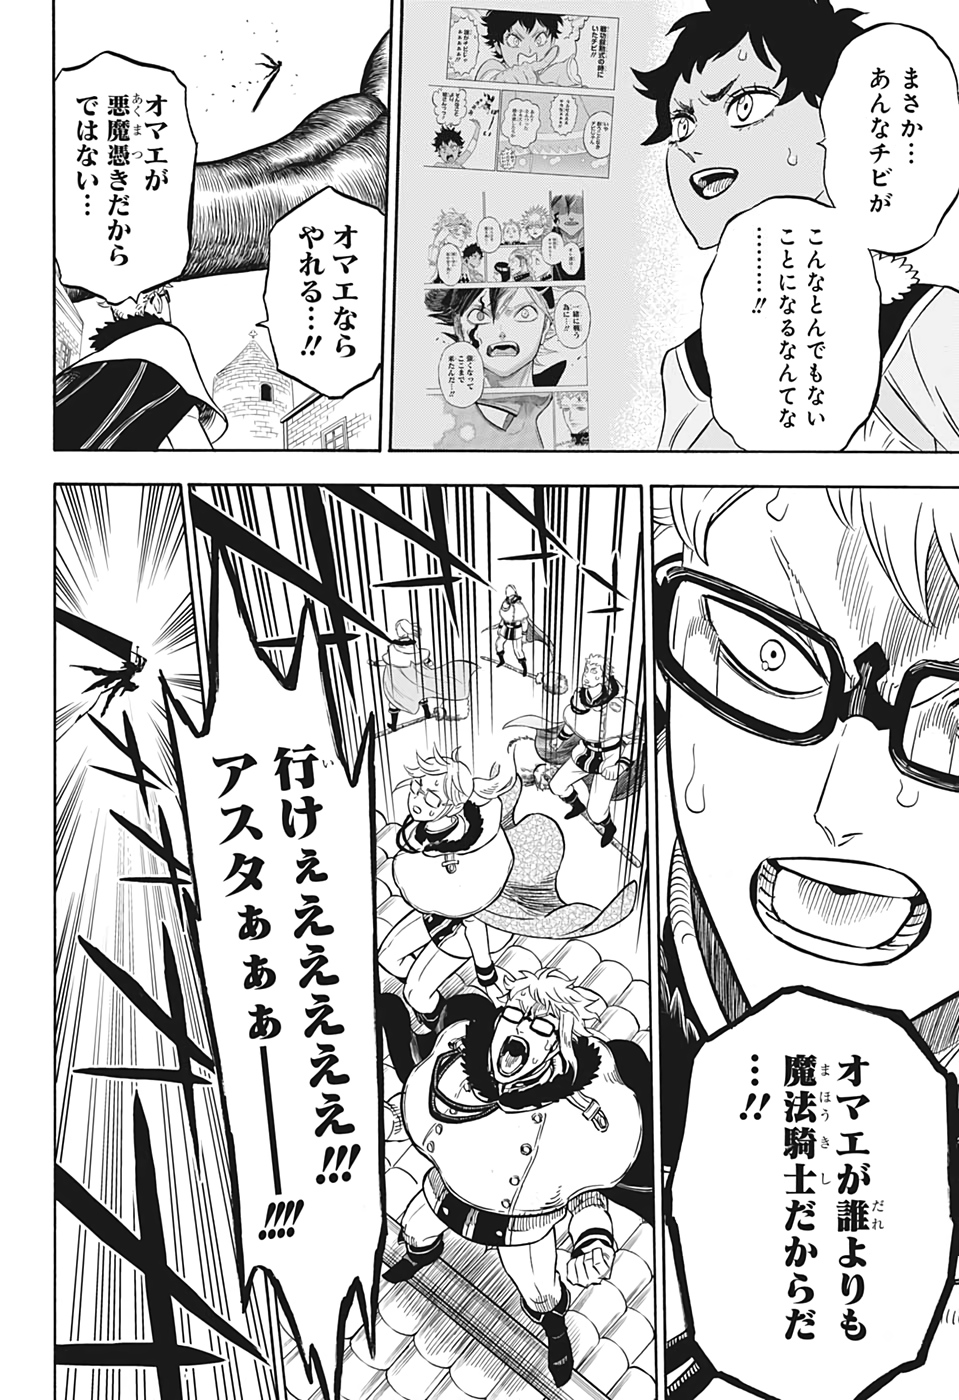 Manga Raw Black Clover Chapter 282